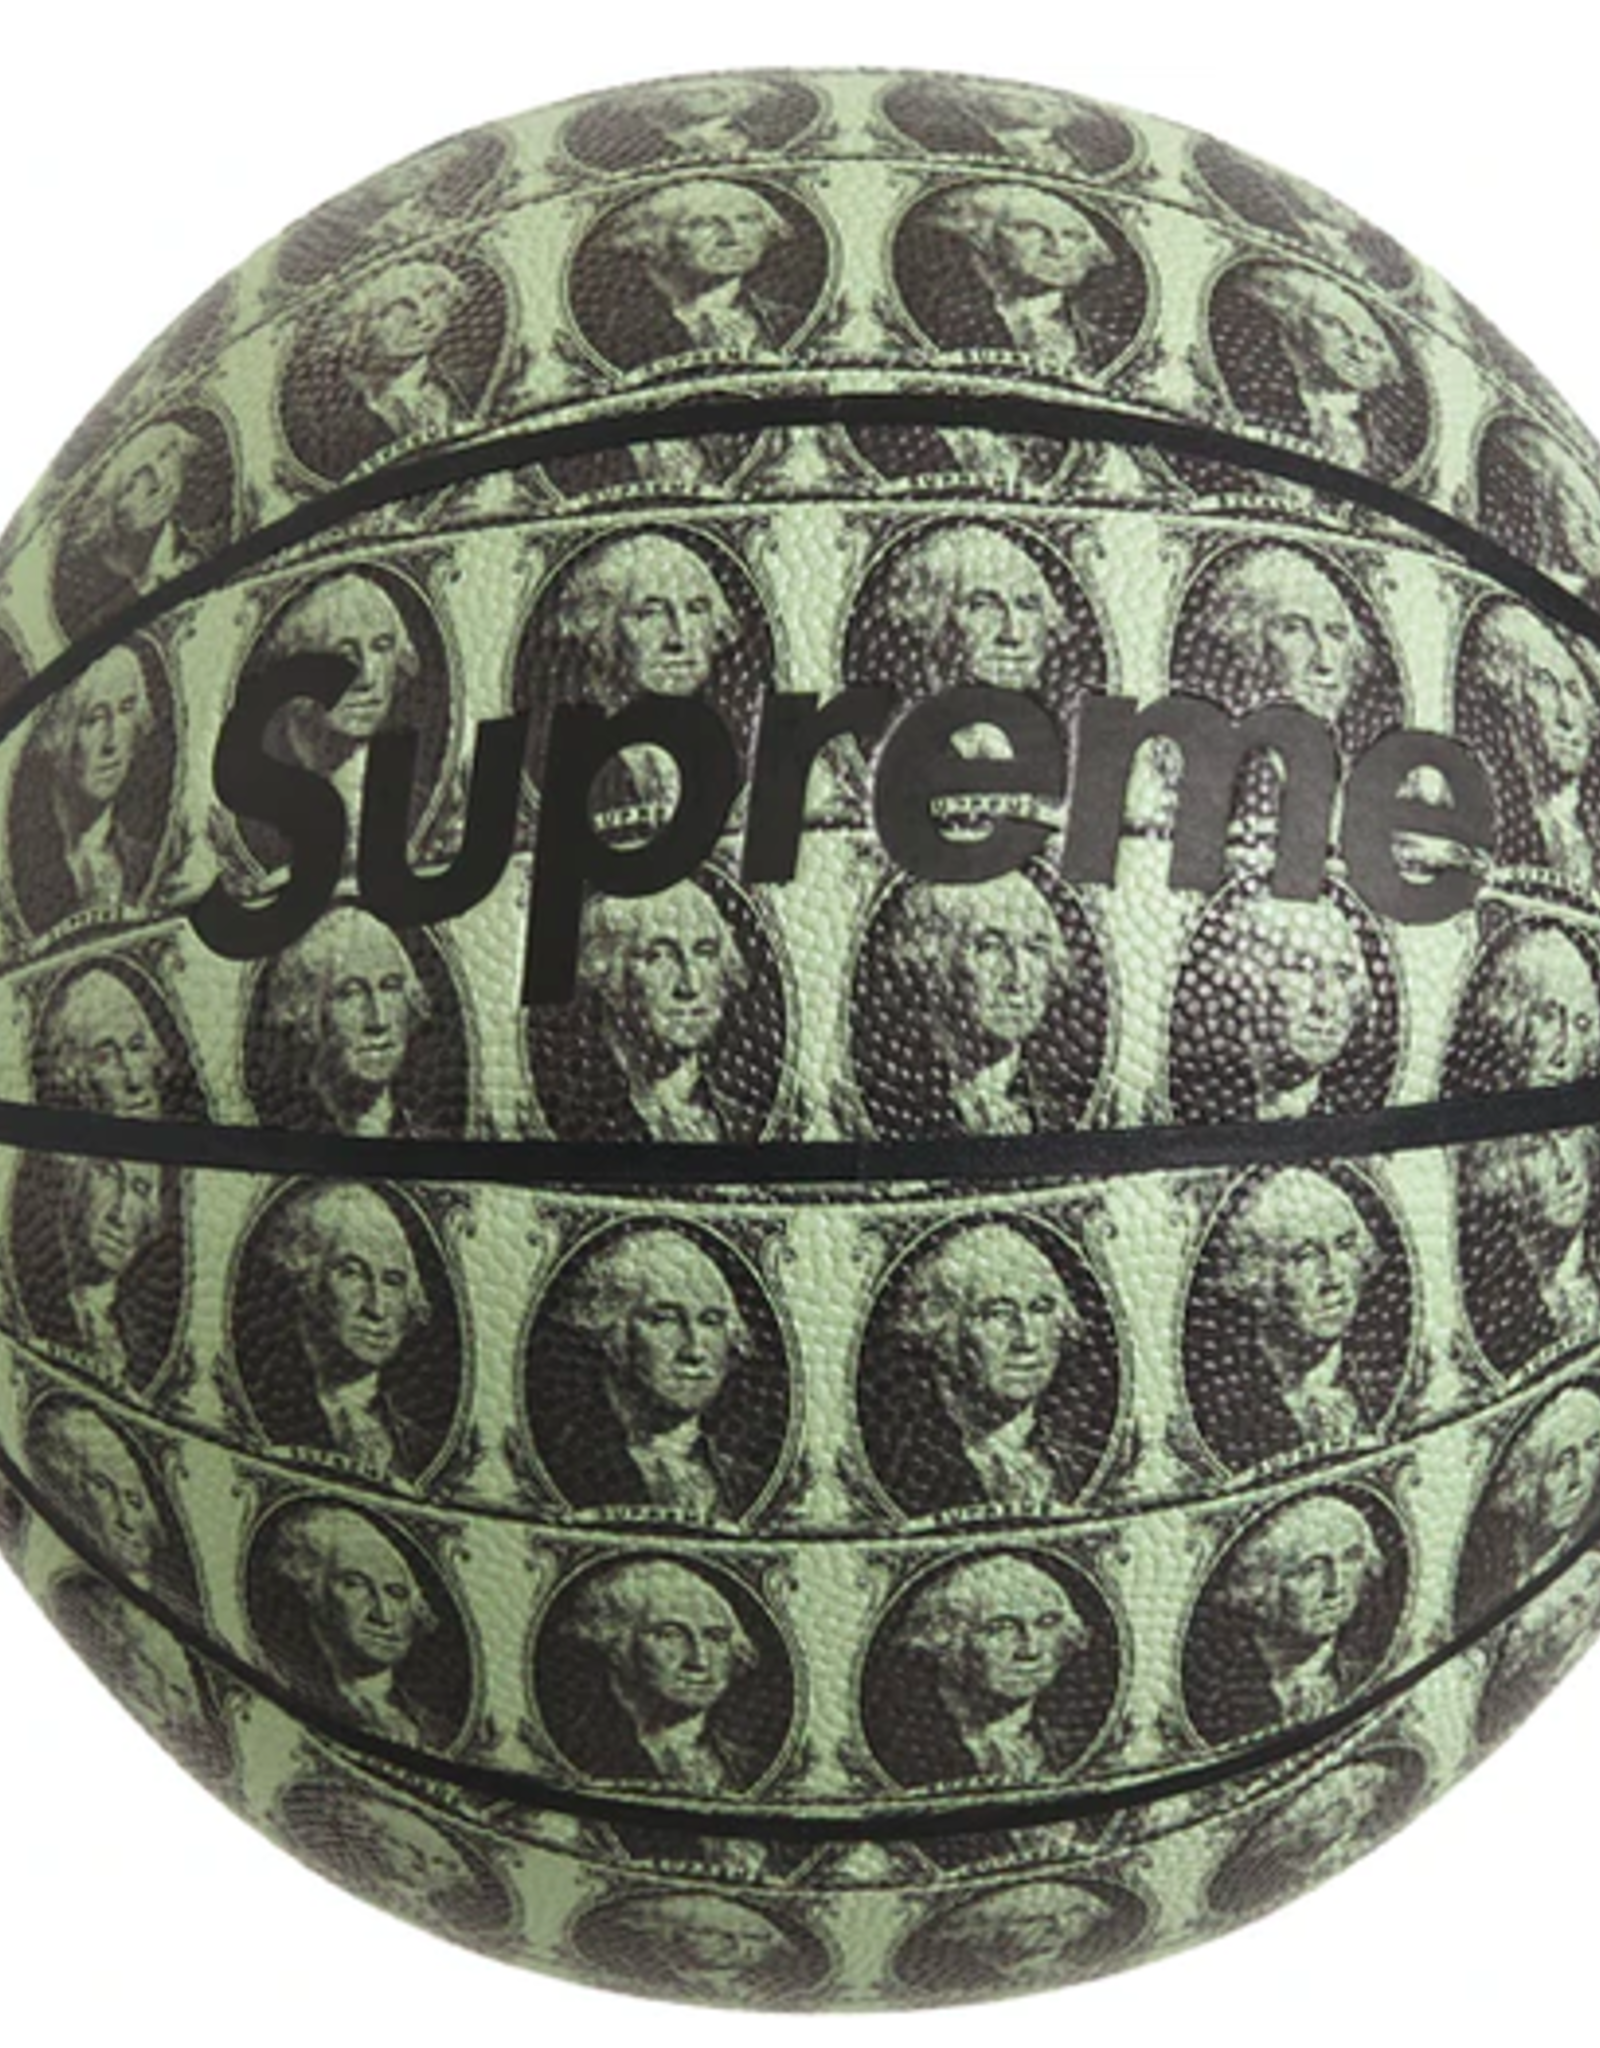 SUPREME Supreme Spalding Washington Basketball Pale Mint